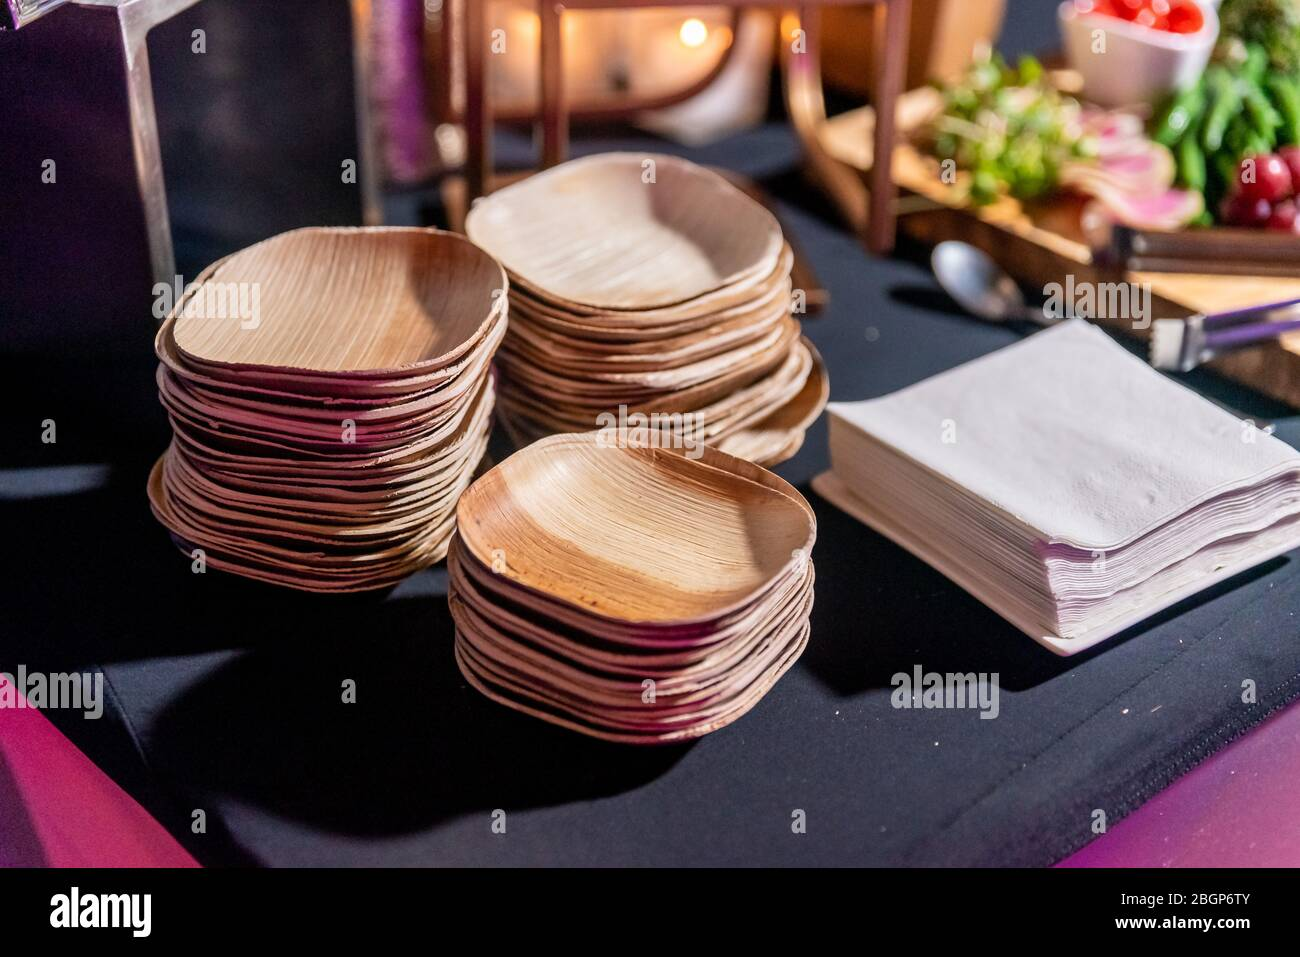 Eco Environmentally Friendly Palm Leaf Plates Made From Natural Sustainable Leaves Biodegradable Alternative To Paper Bamboo Plastic Or Wood Plate Stock Photo Alamy